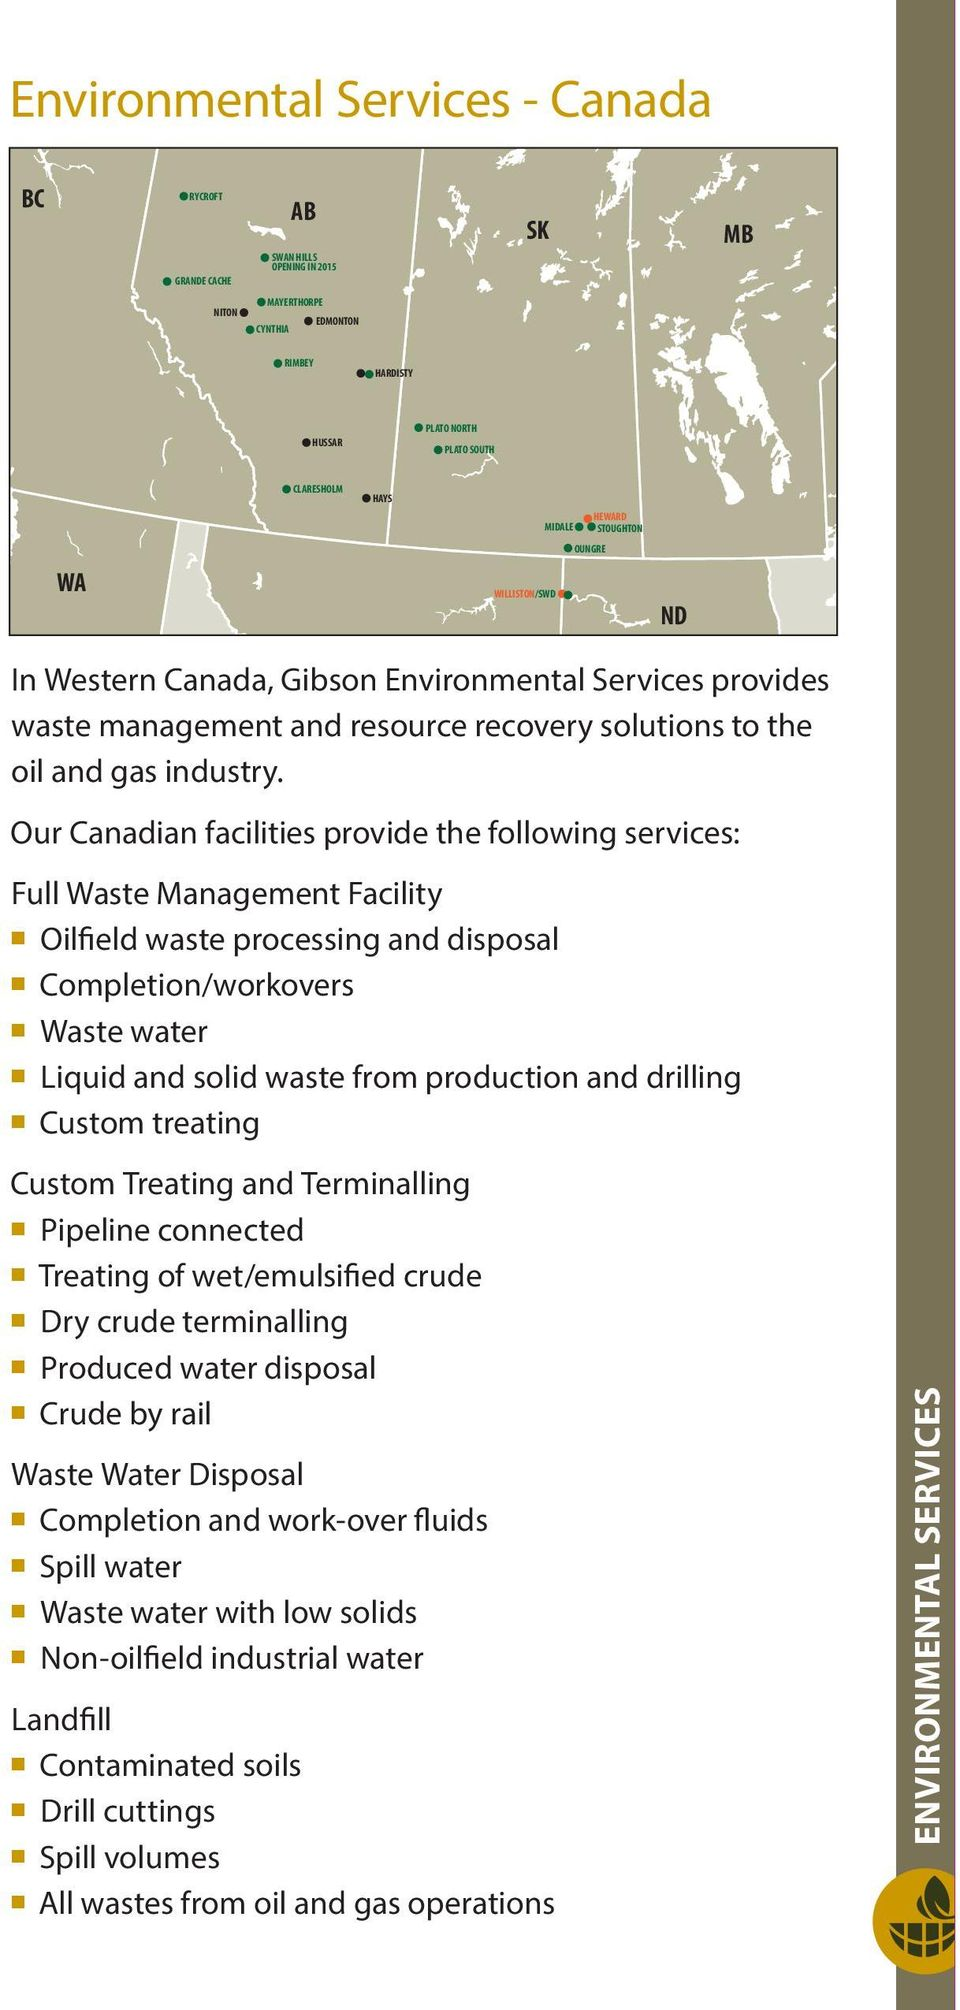 Our Canadian facilities provide the following services: Custom Treating and Terminalling Pipeline connected Treating of wet/emulsified crude Dry crude terminalling Produced water disposal Crude by